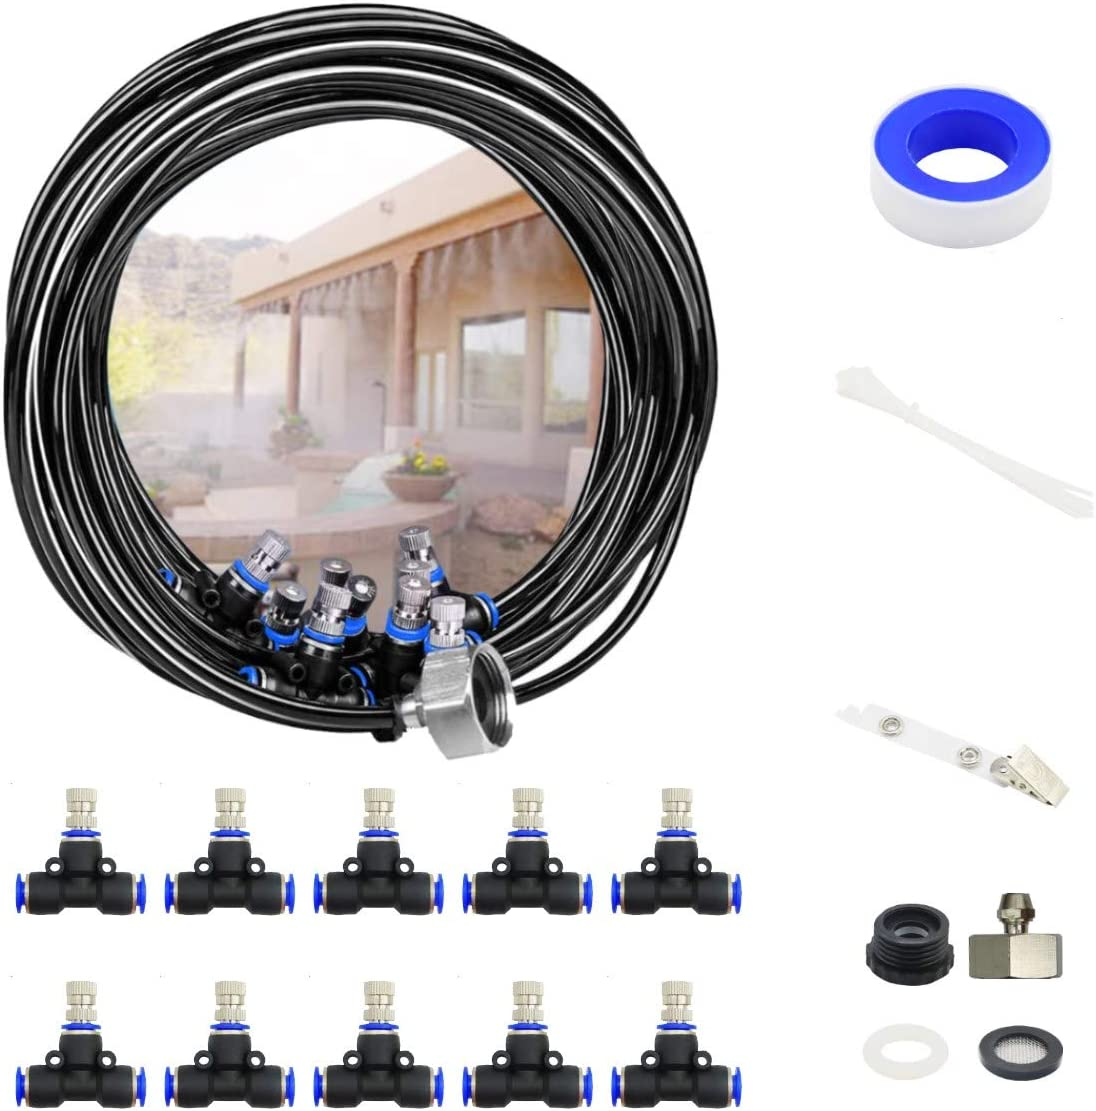 AmazeFan Misting Cooling System, Outdoor Water Mist Kit, 26.3' (8M) Misting Line + 11 Mist Nozzles + Adapter (3/4